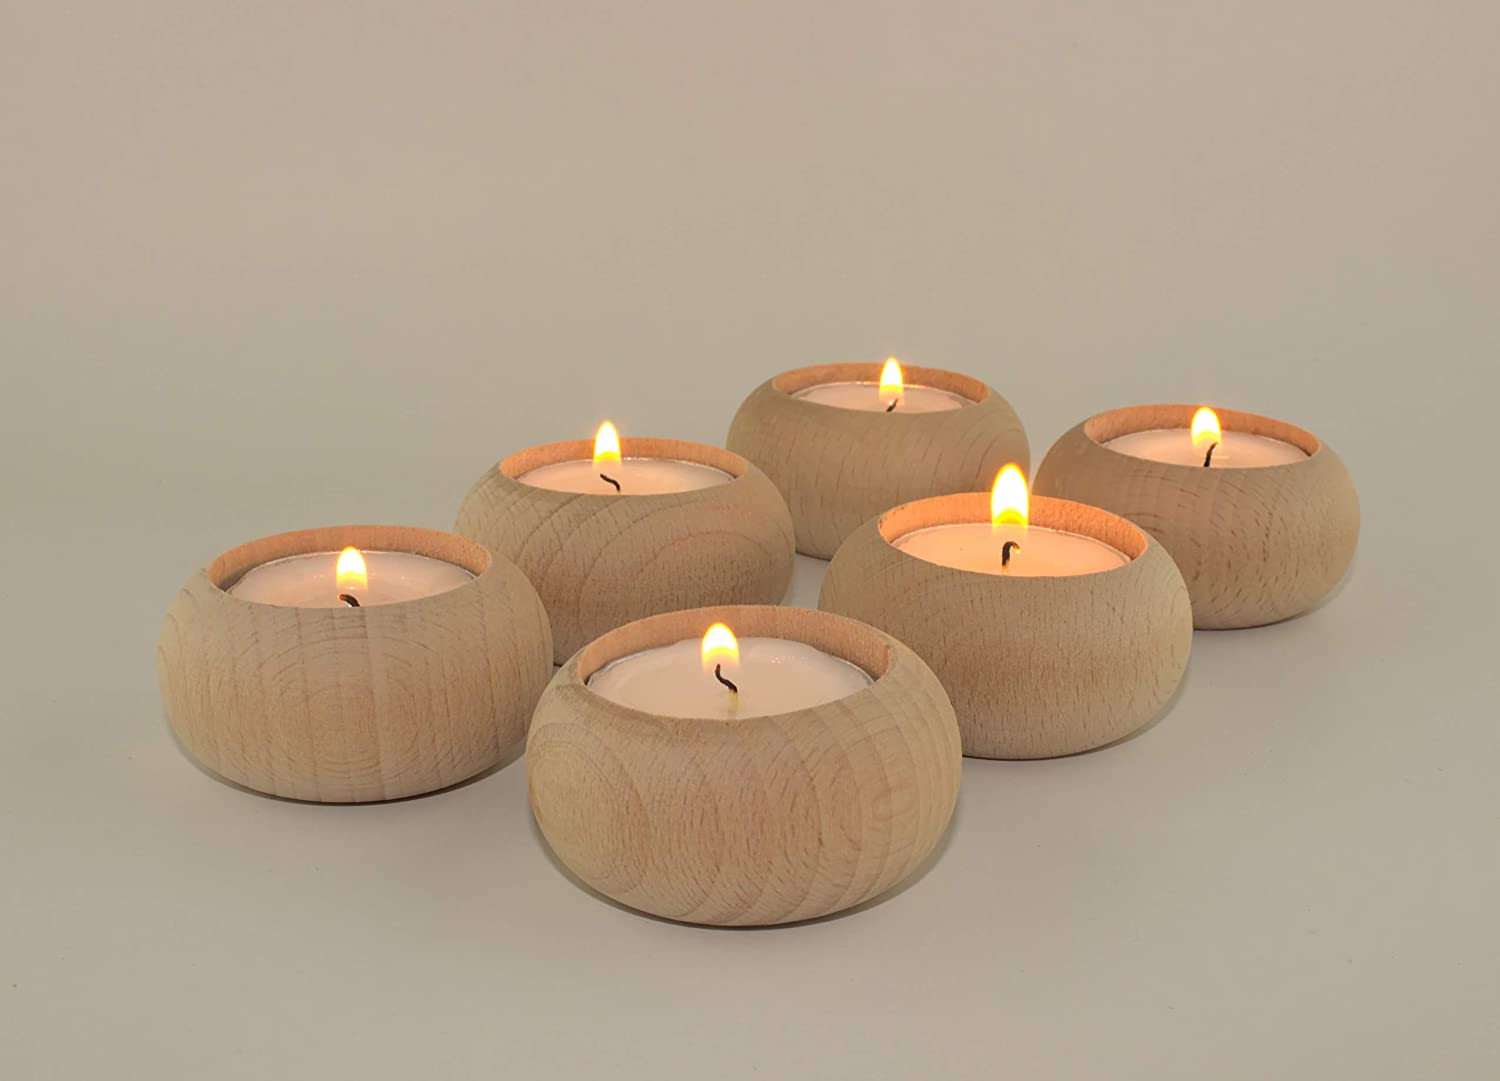 Wood Candle Holders for votives and Tea Lights Candles Set of 6. Dining and Wedding Table centerpieces for Receptions or Home Decor, Ideal for Handmade Shower Favors & Housewarming Gift